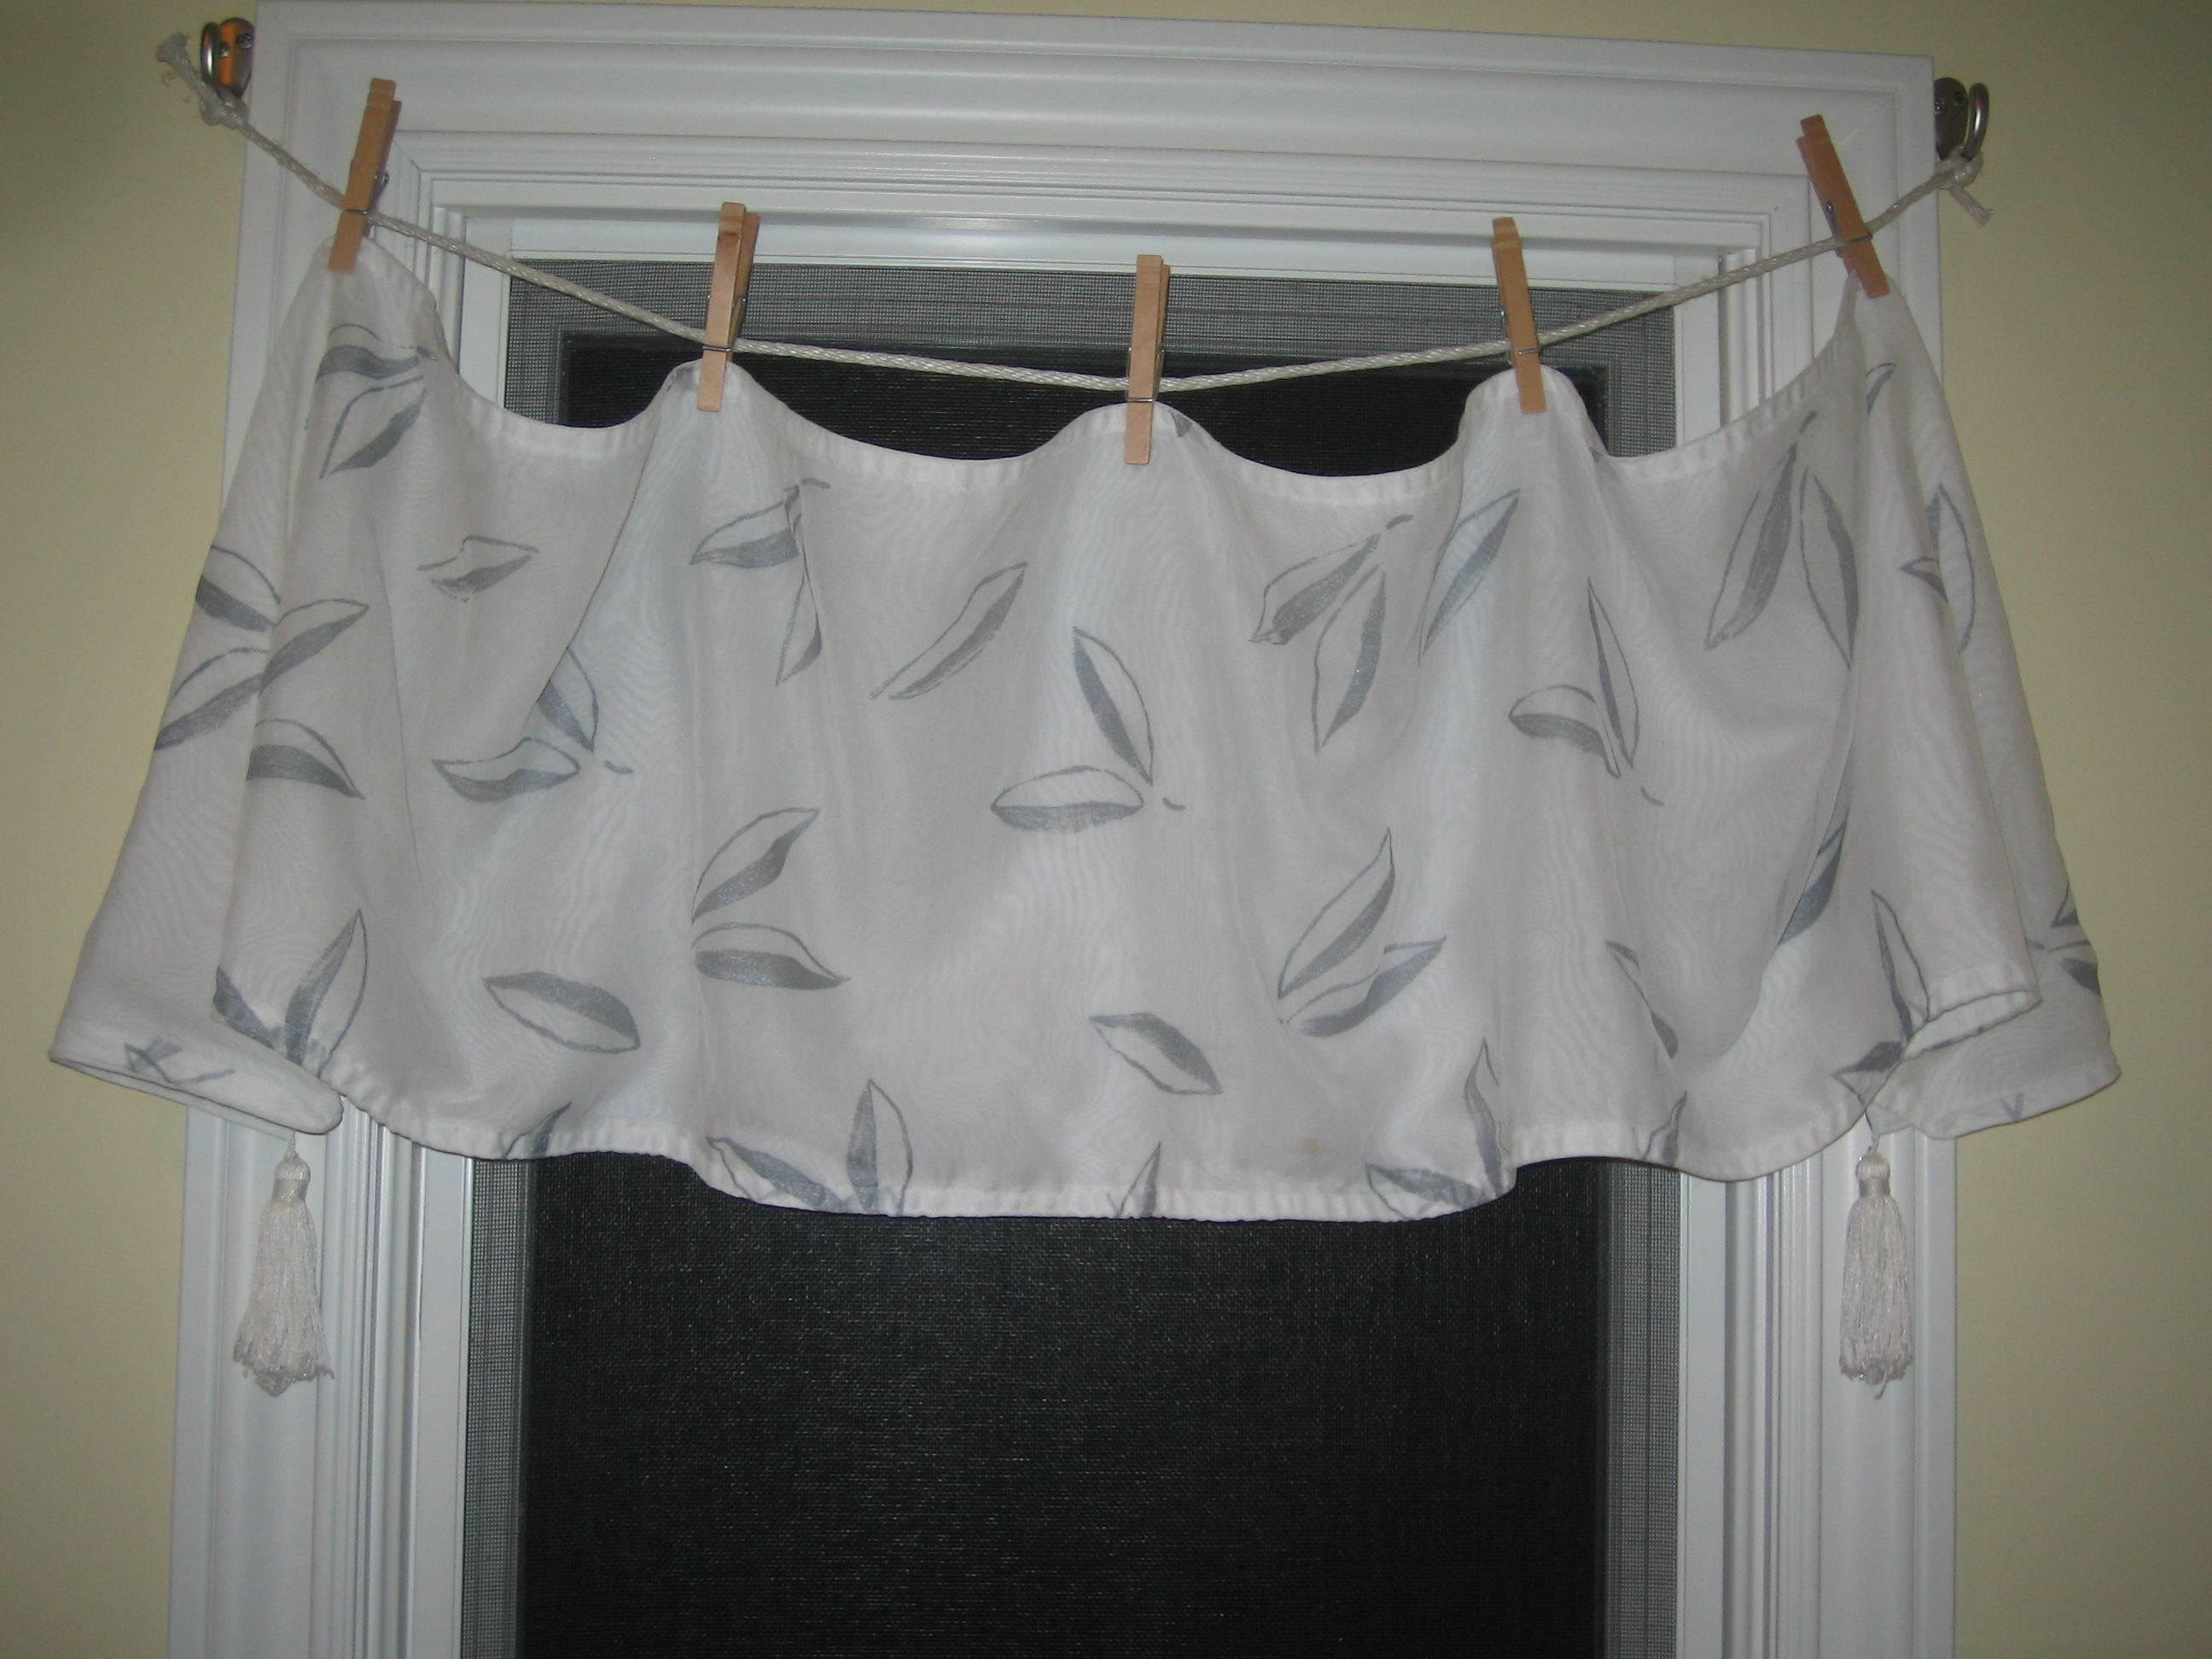 Custom Window Coverings and Treatments  Sewing Whimsical Curtains ...